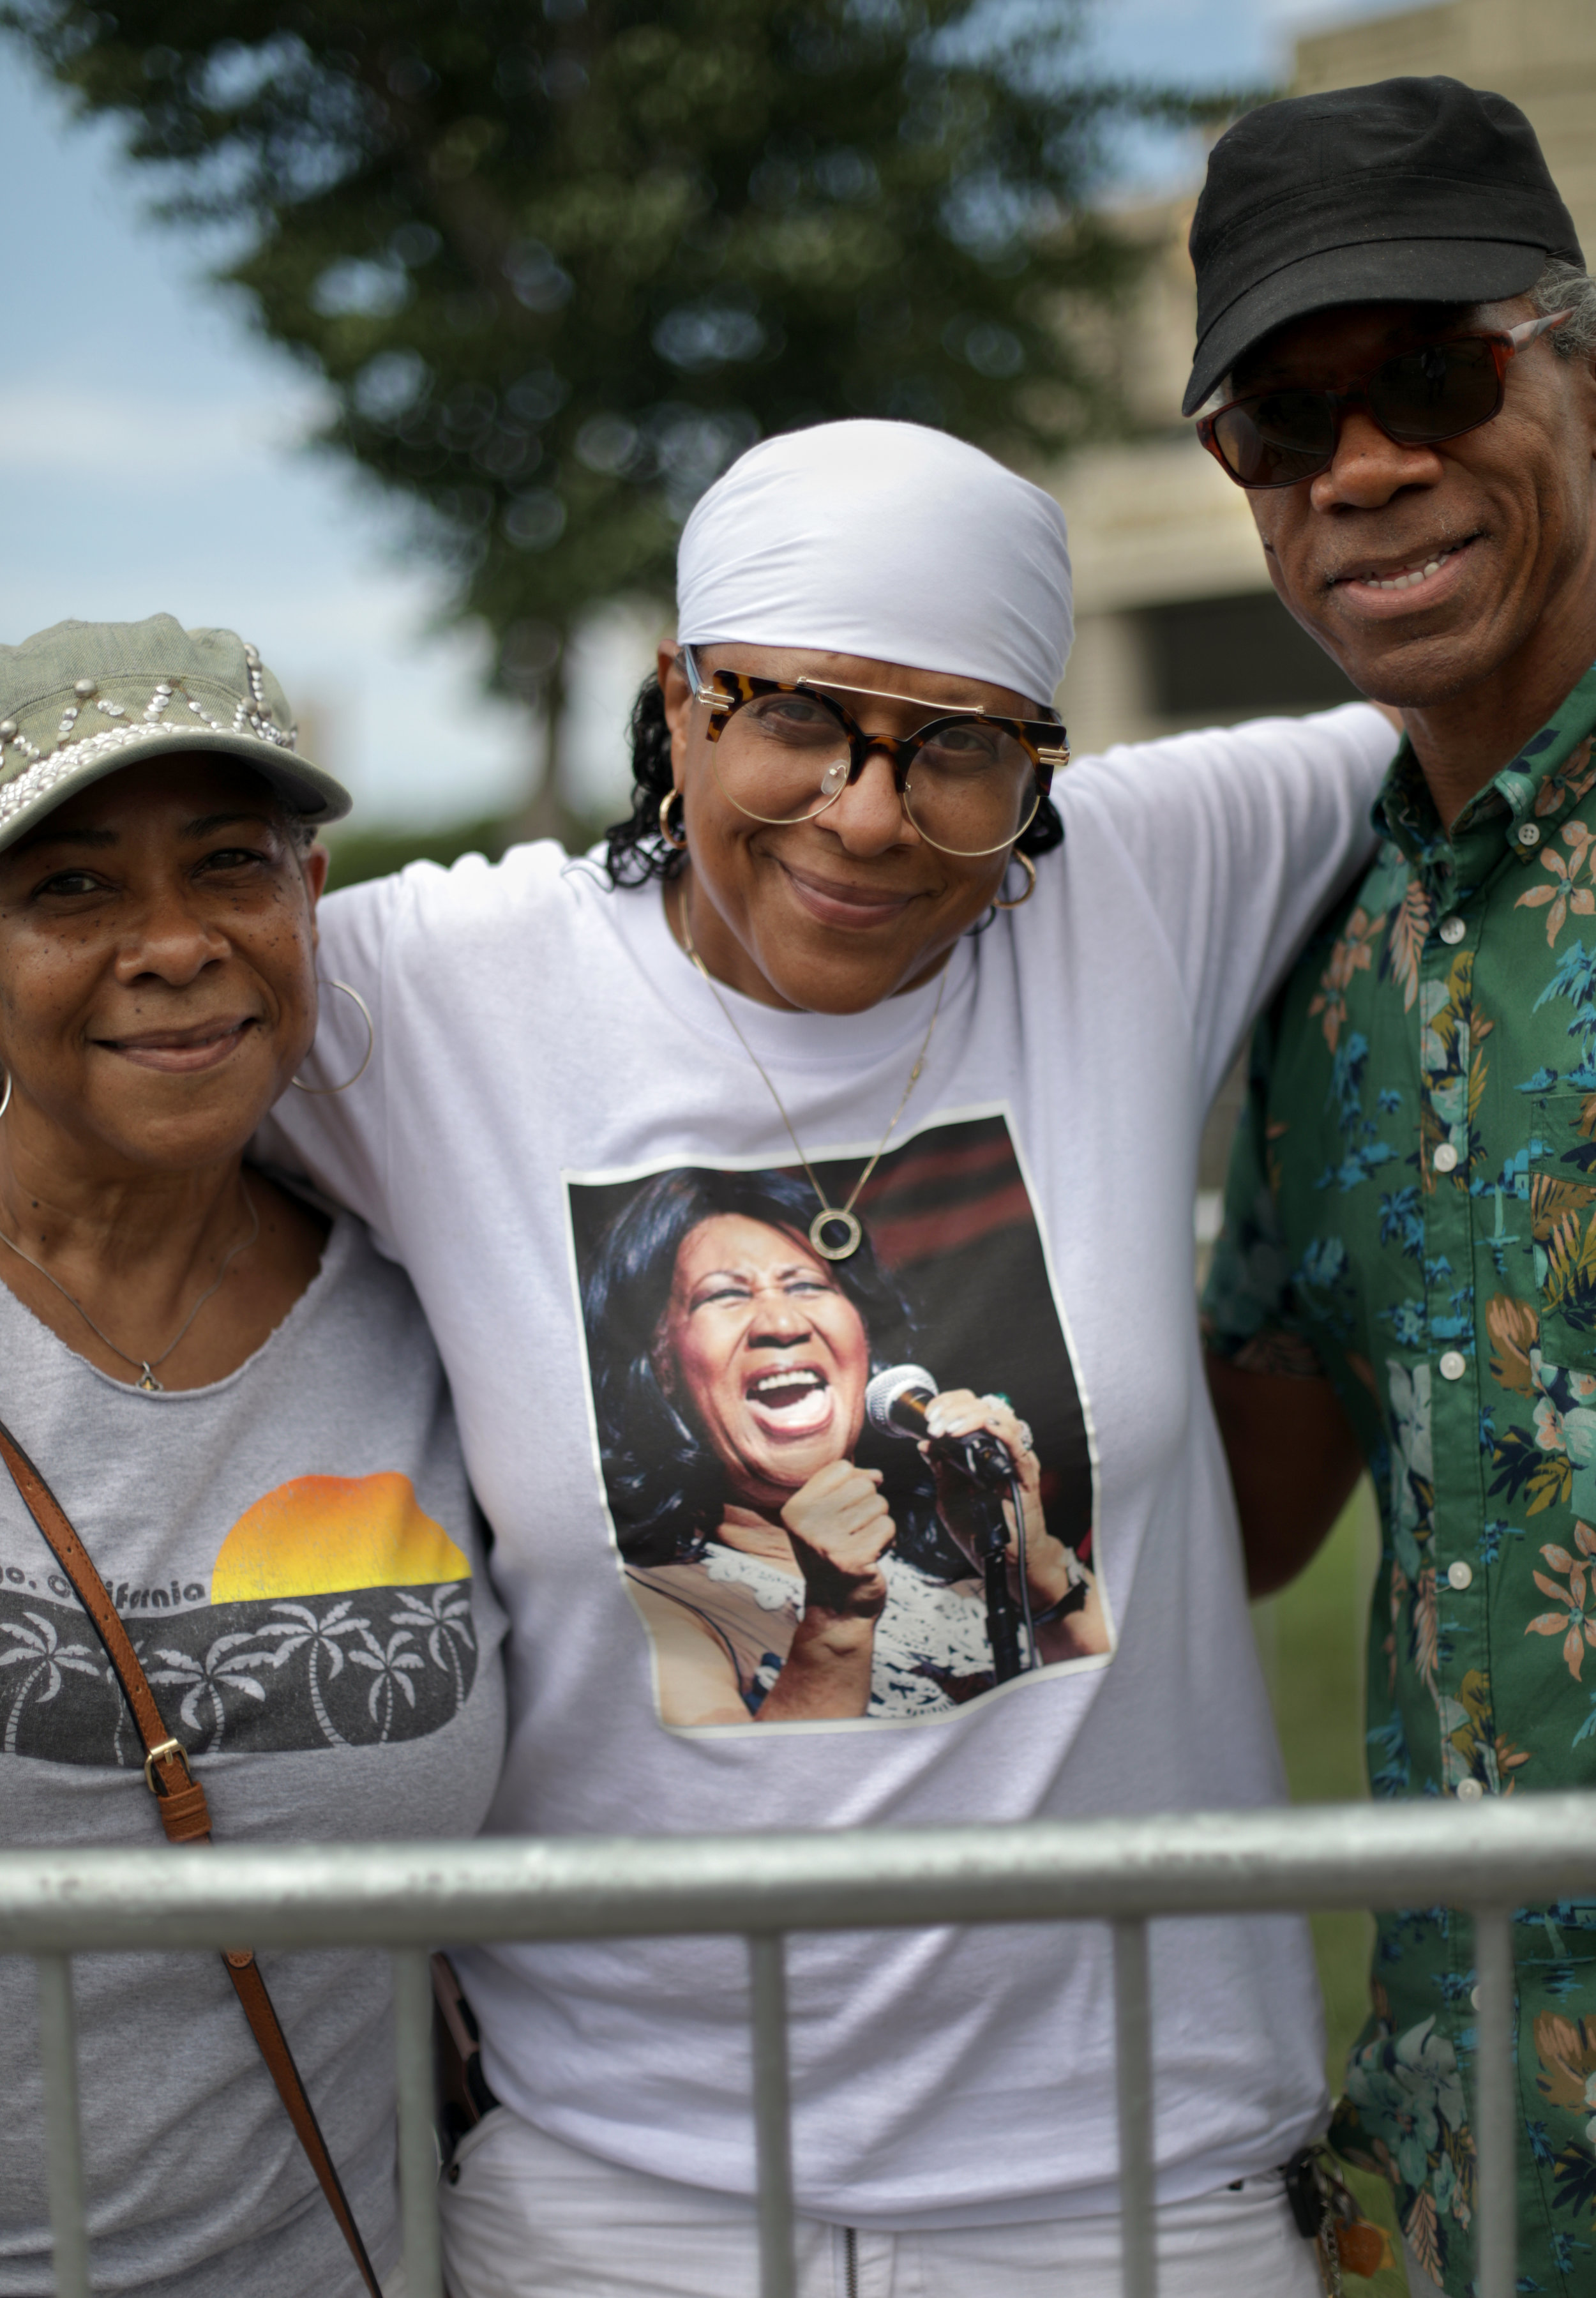 Kim Bradley, 50 of Detroit from left with her siblings Krystal Troutman, 56 of Detroit and Phillip Troutman, 50 of Southfield.